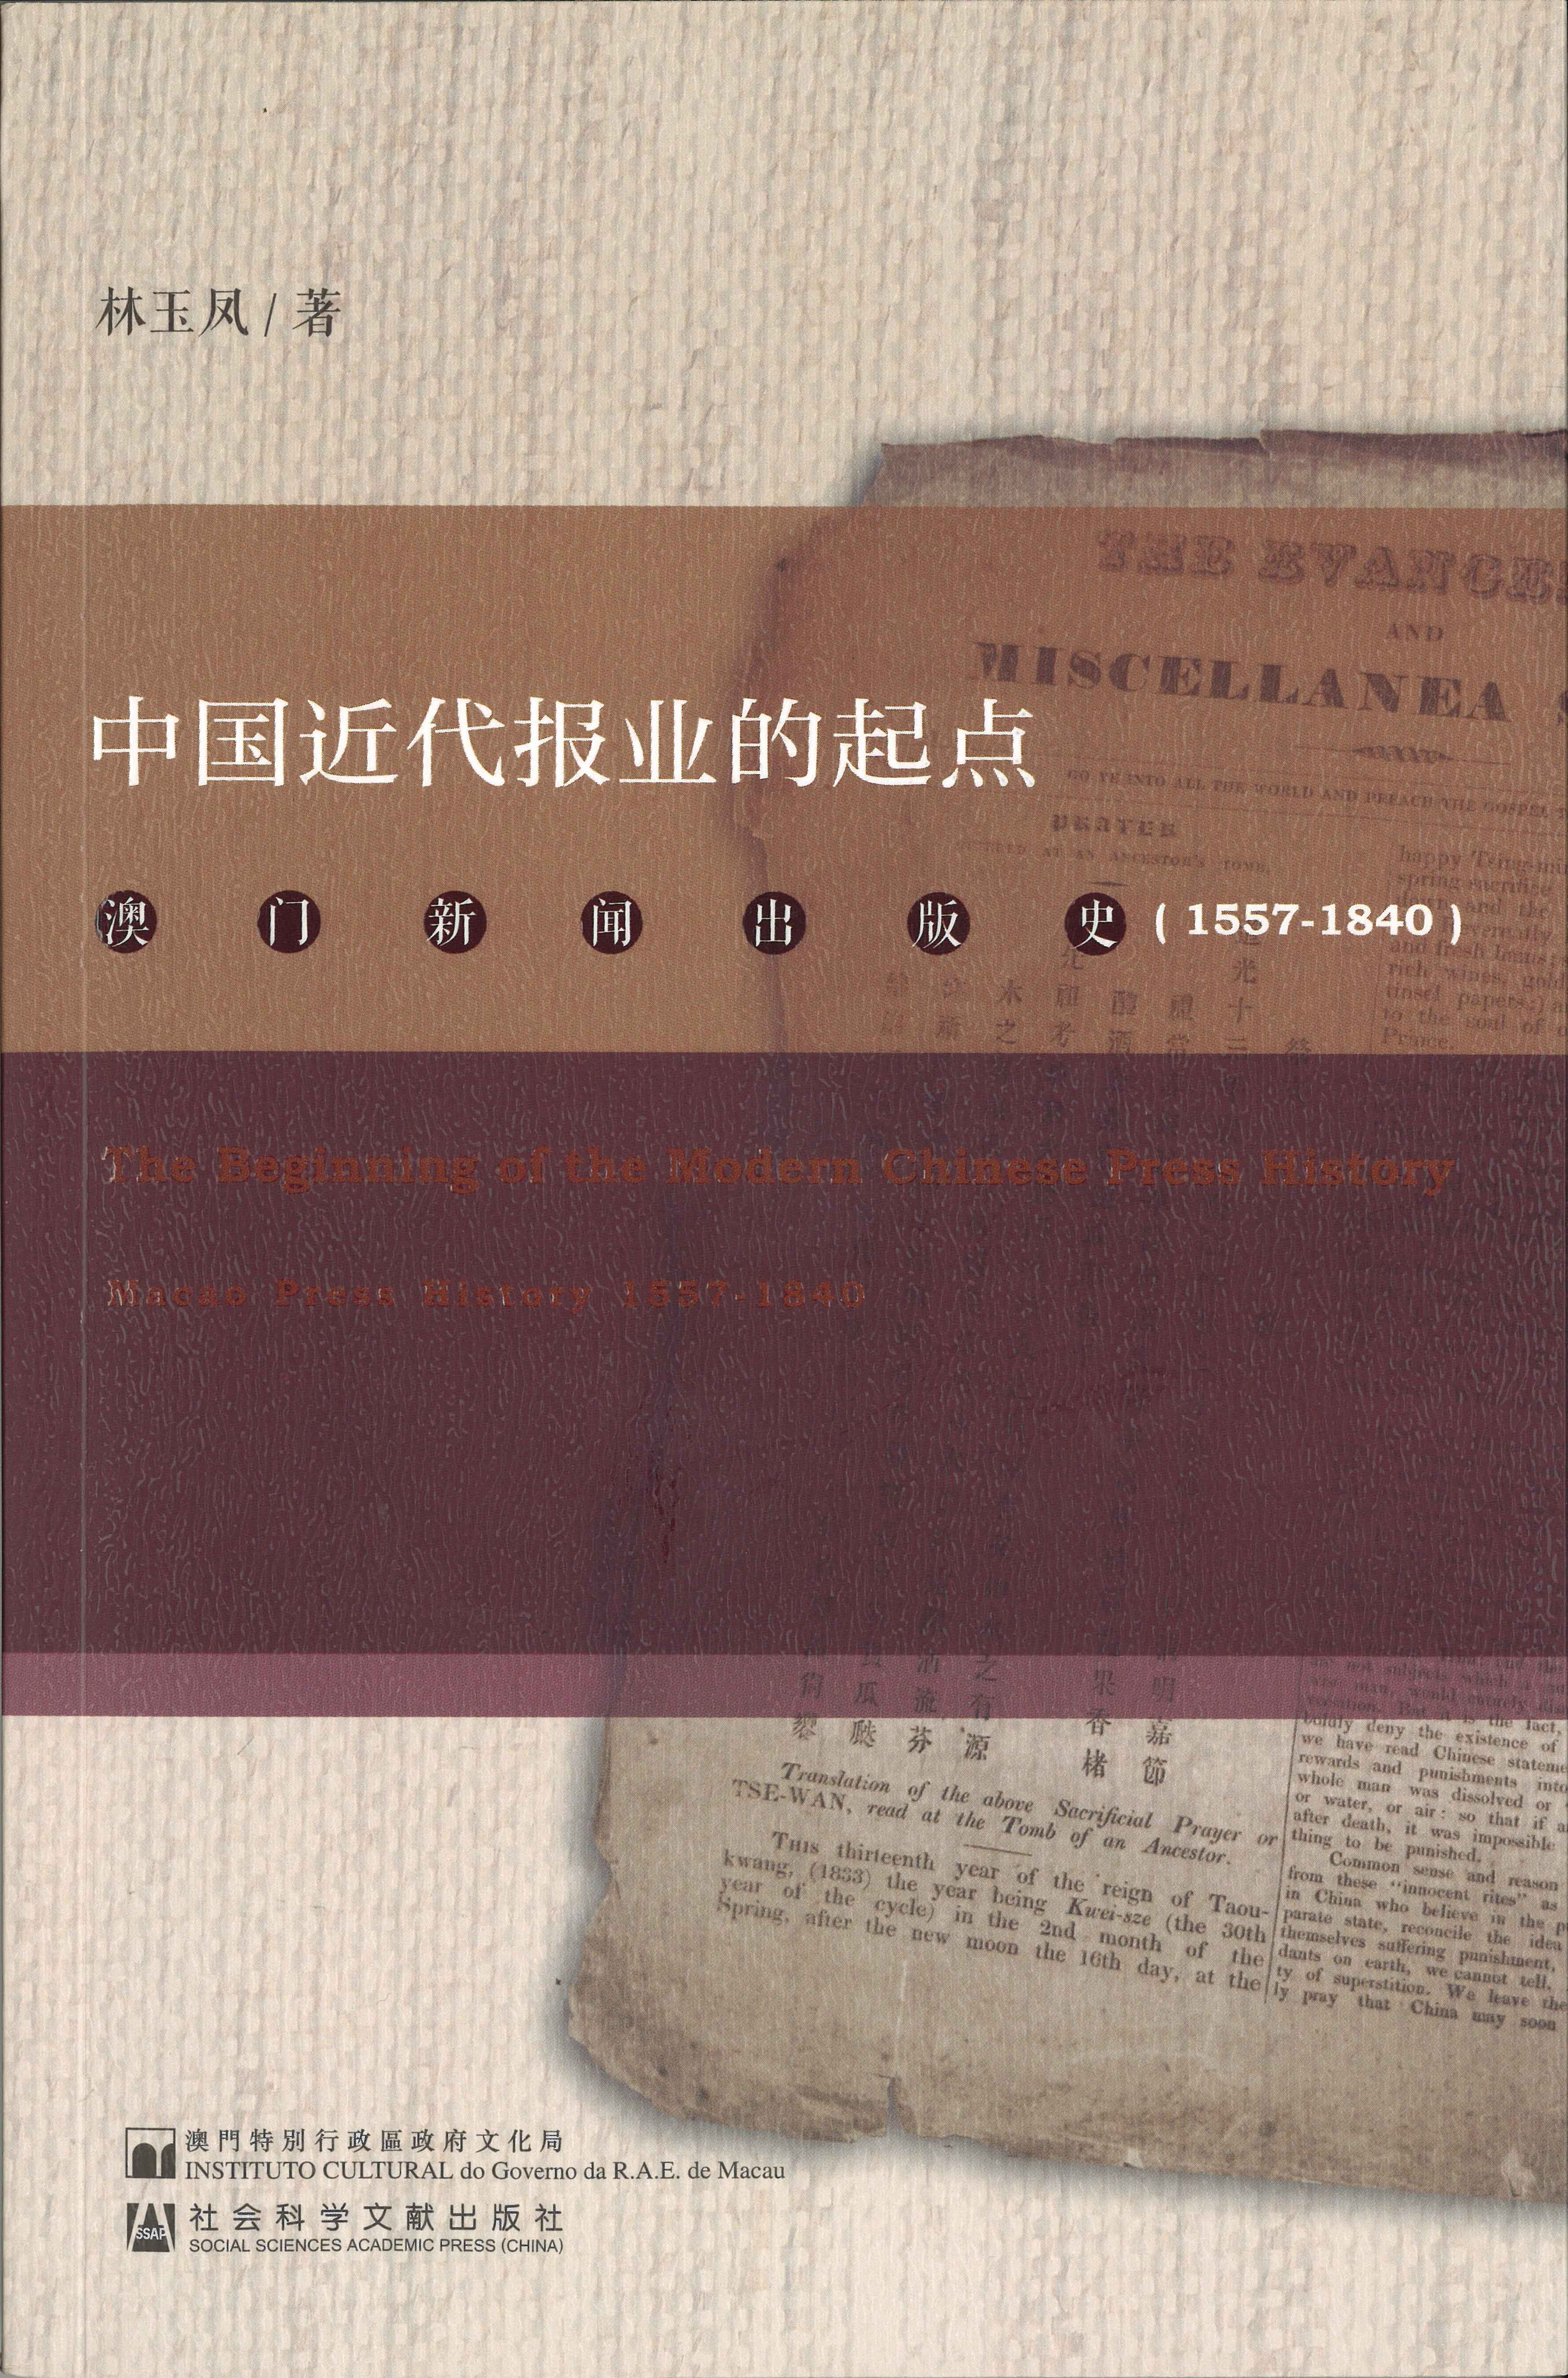 The Beginning of Modern Chinese Press History: Macao Press History 1557-1840